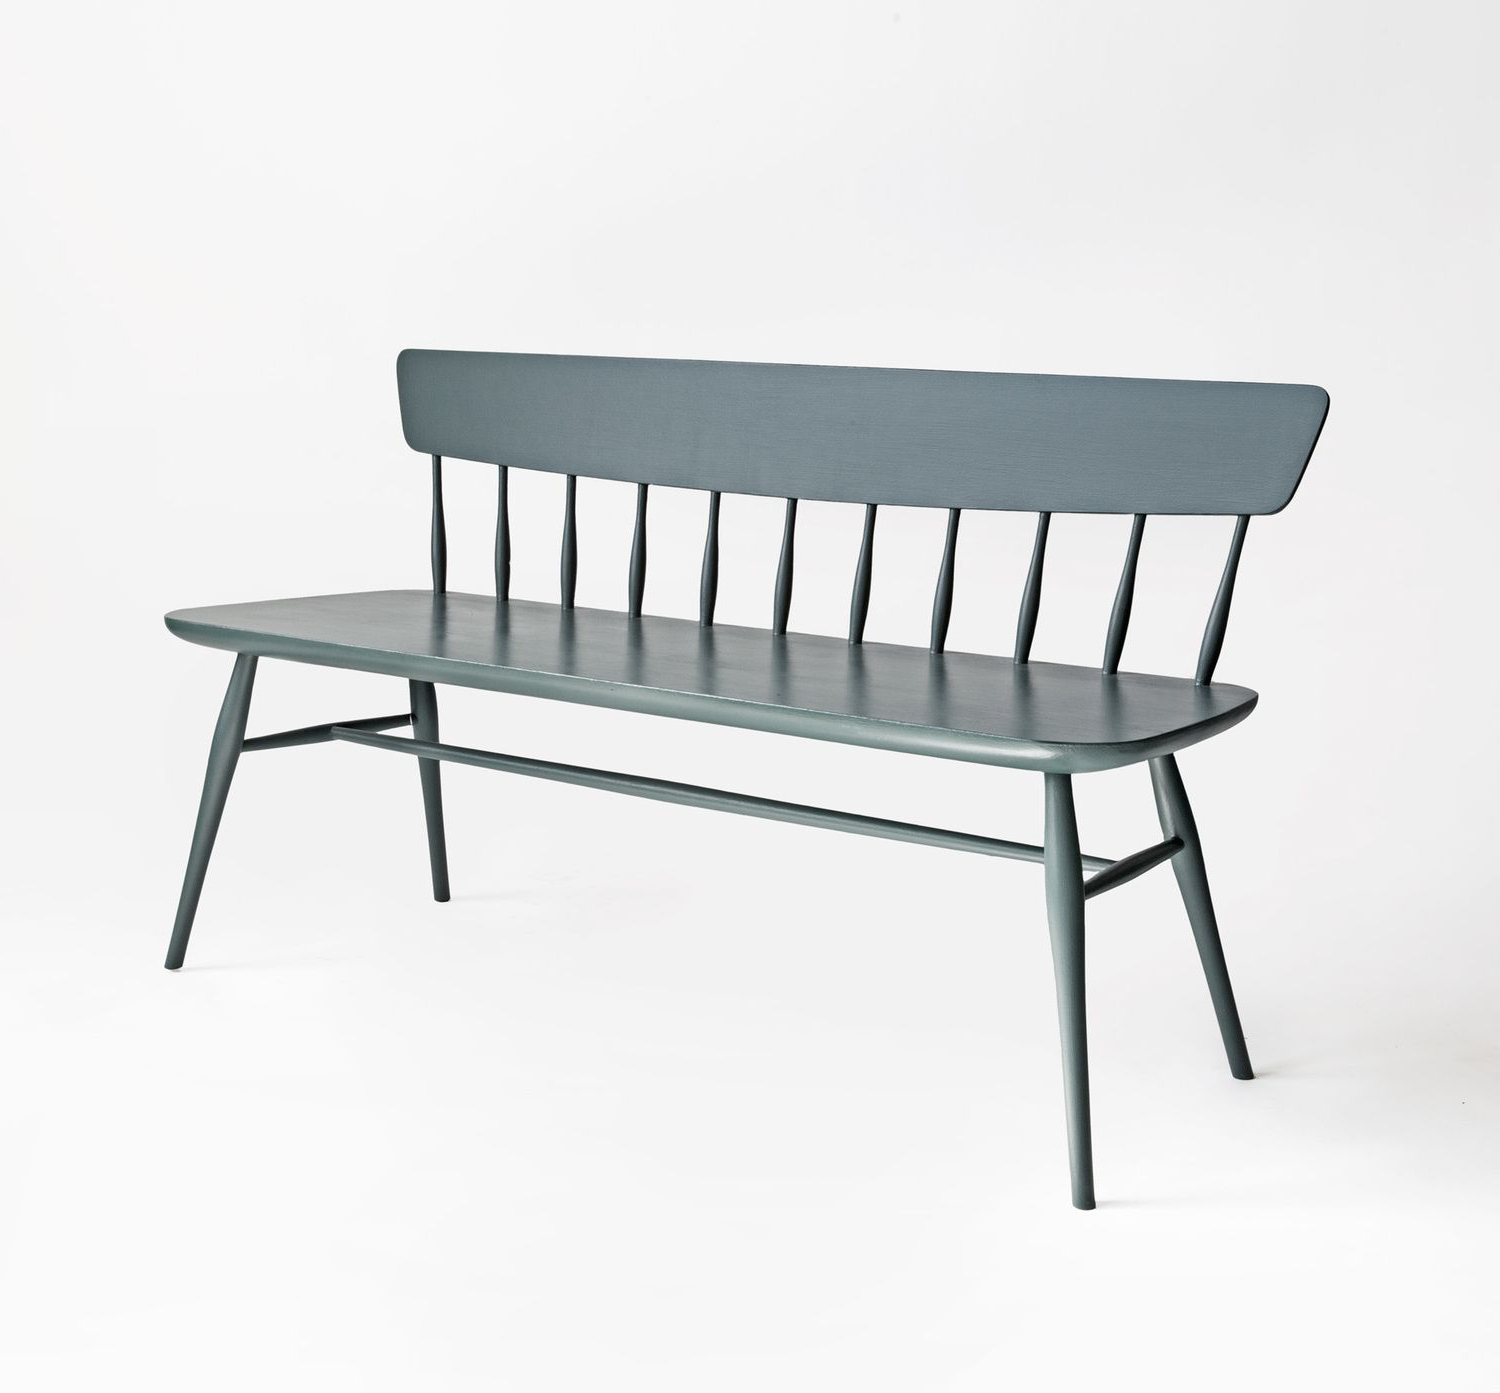 Sibbi Glider Benches Within 2020 Pin On Furnish (View 7 of 30)